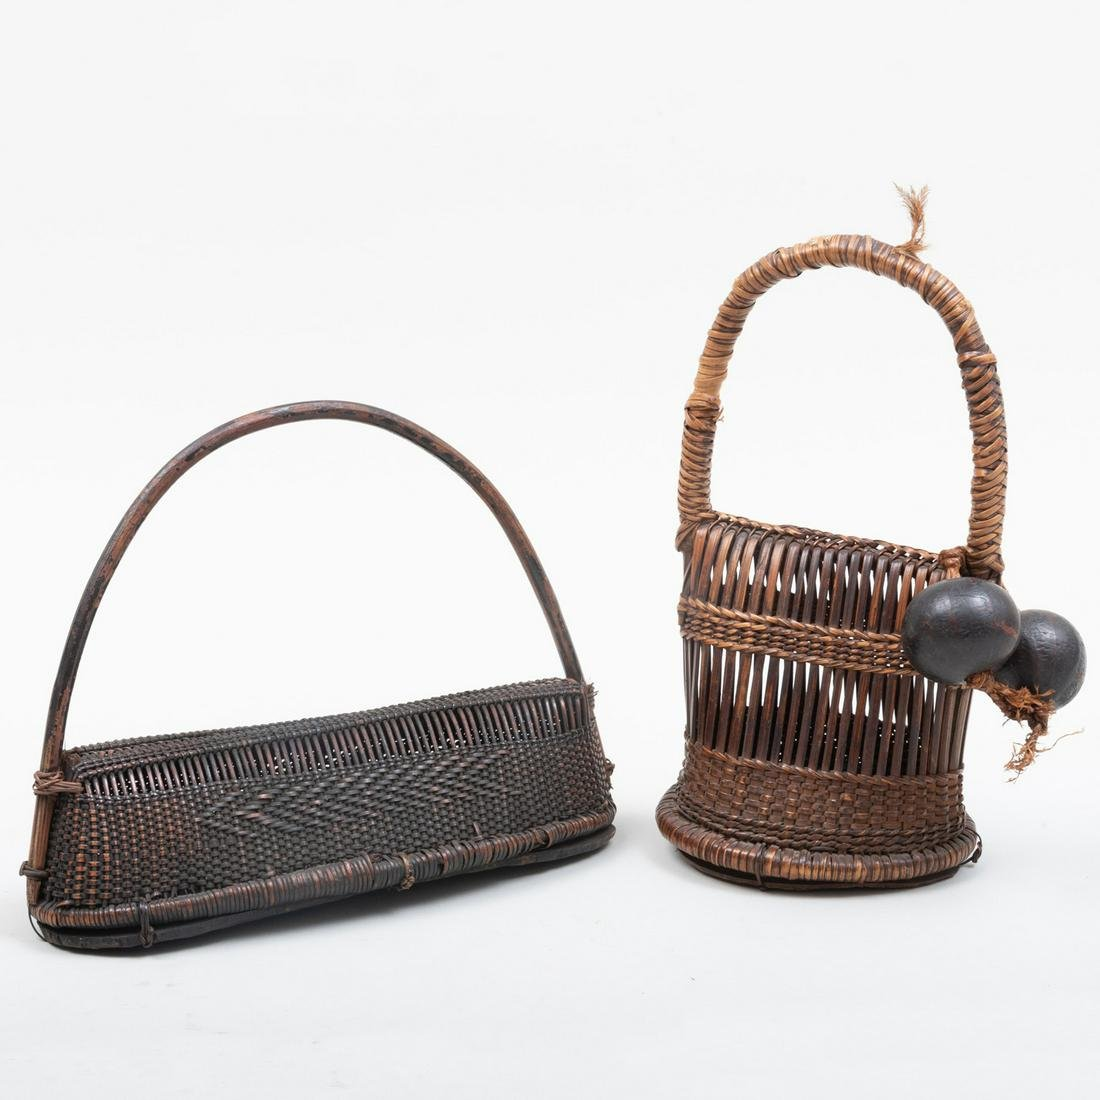 Two Democratic Republic of Congo Woven Reed and Leather